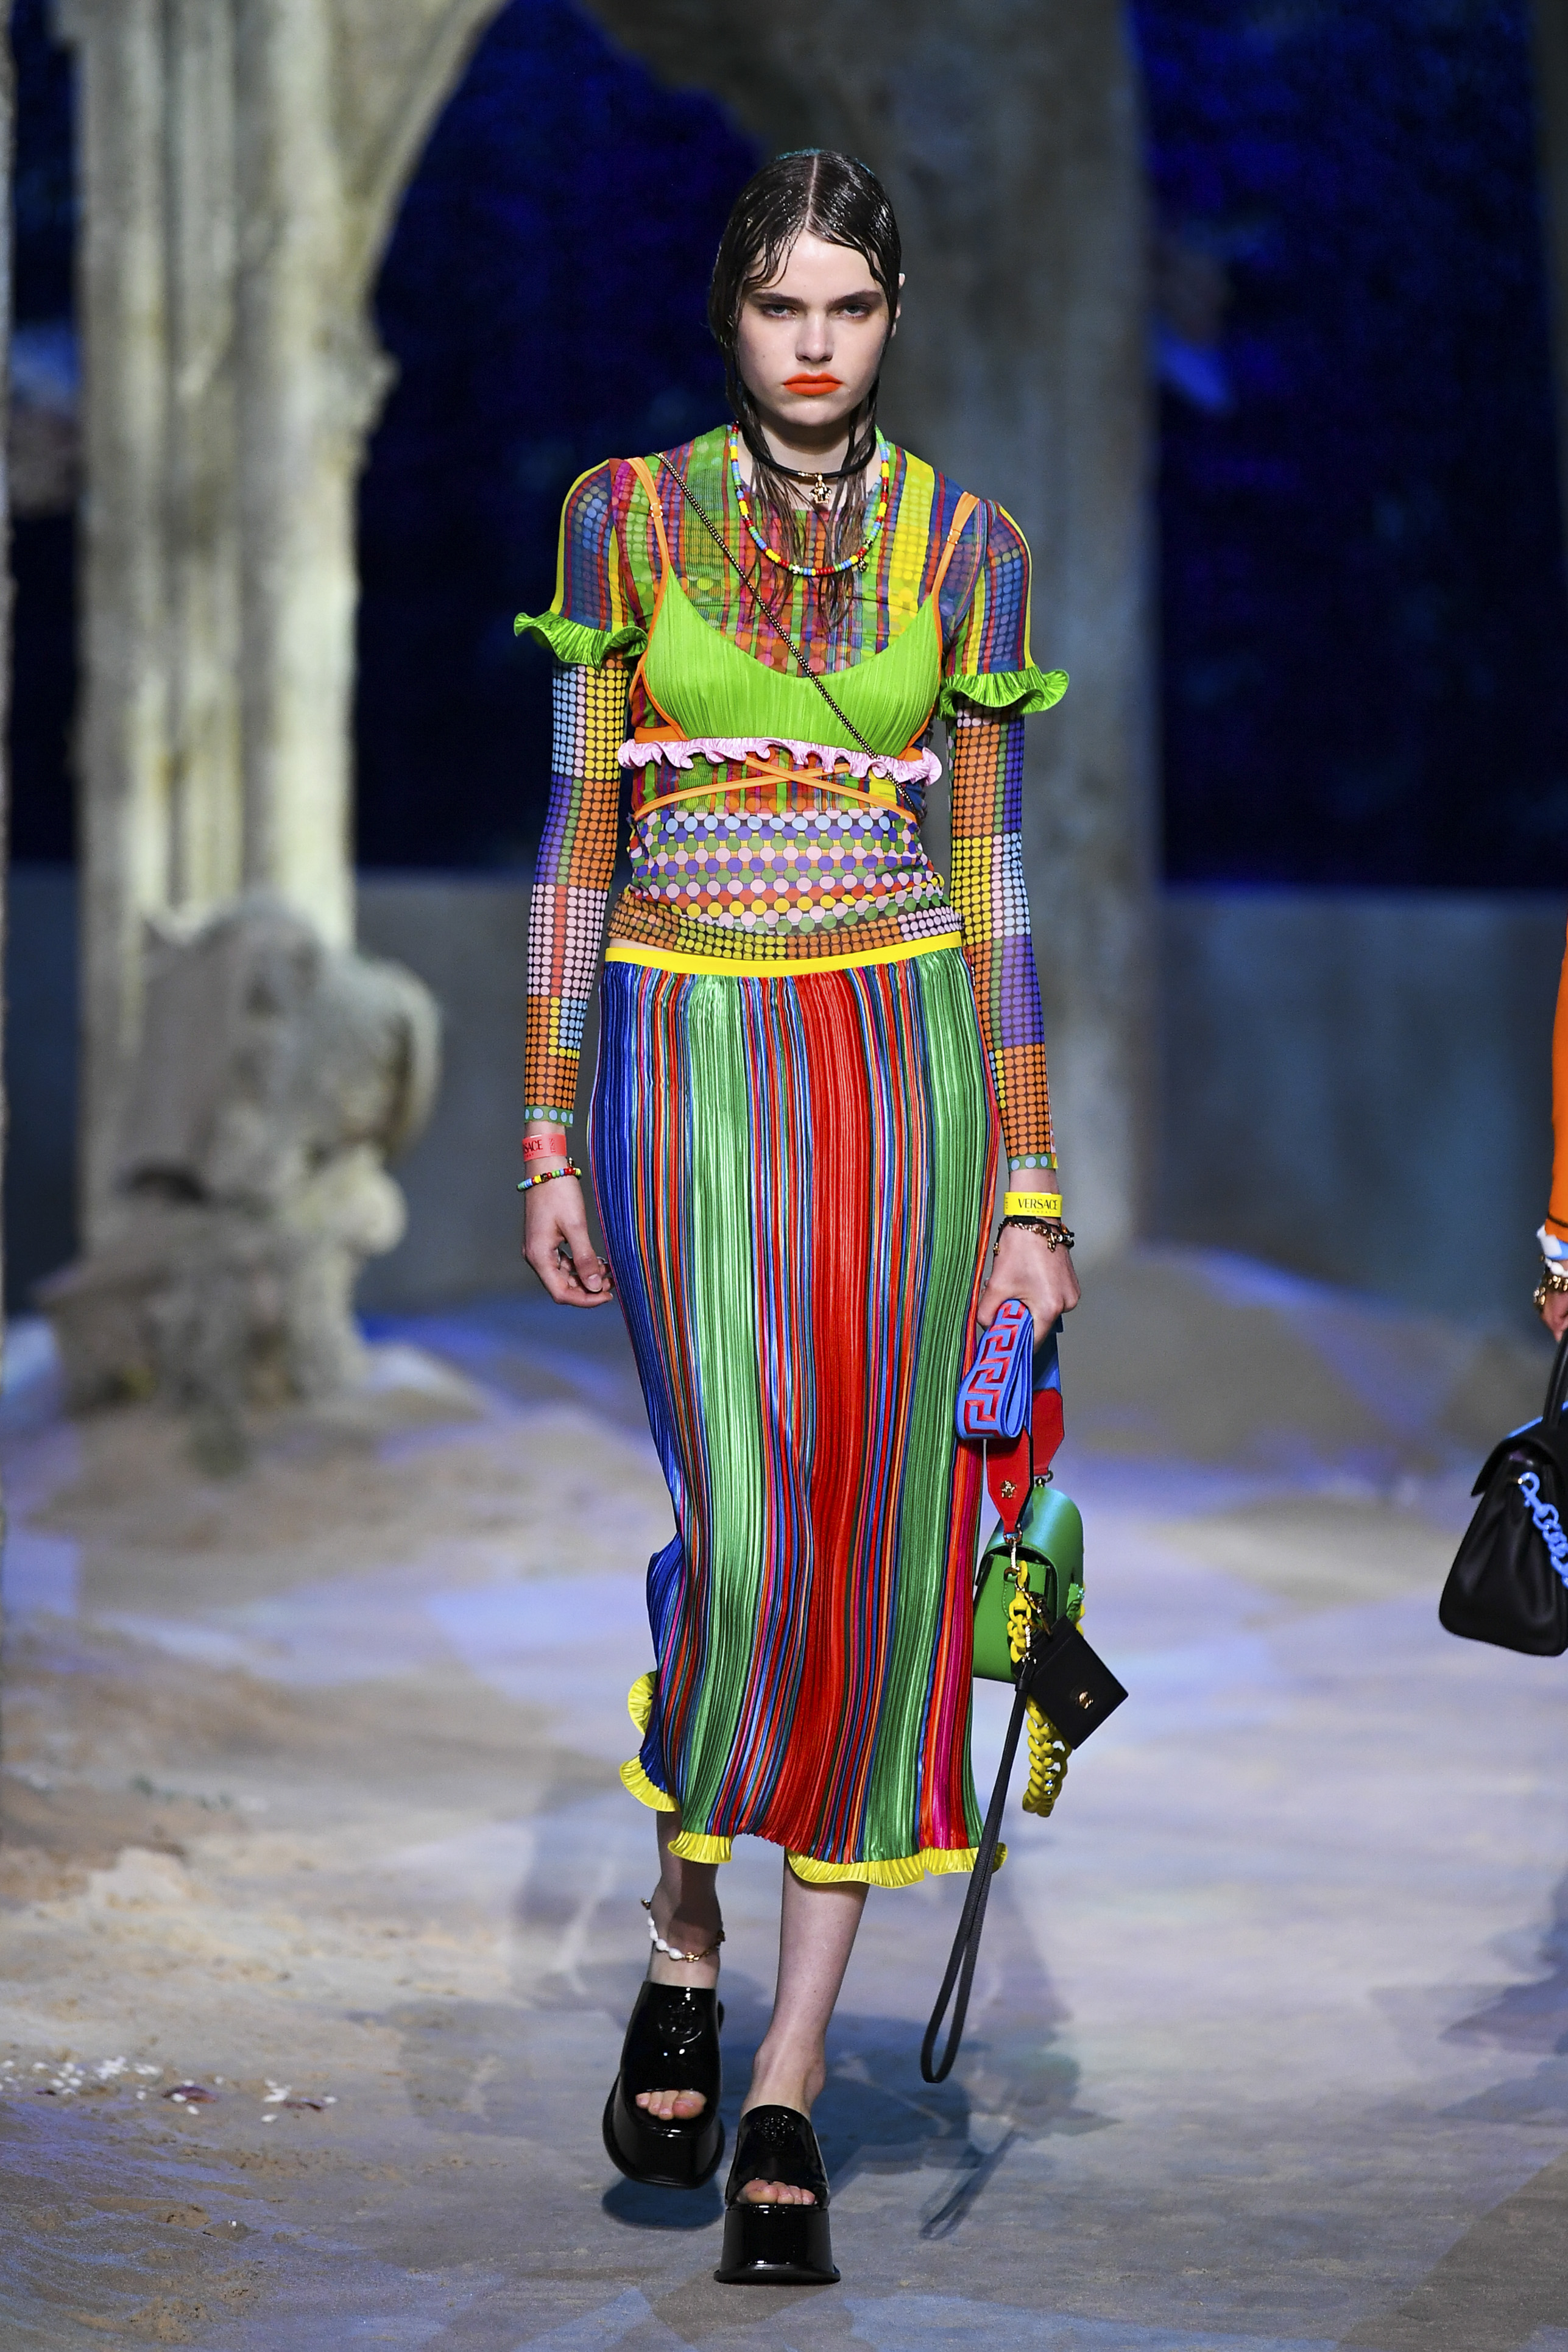 Prints galore: Dolce & Gabbana and Versace's Spring/Summer '21 collection (фото 24)